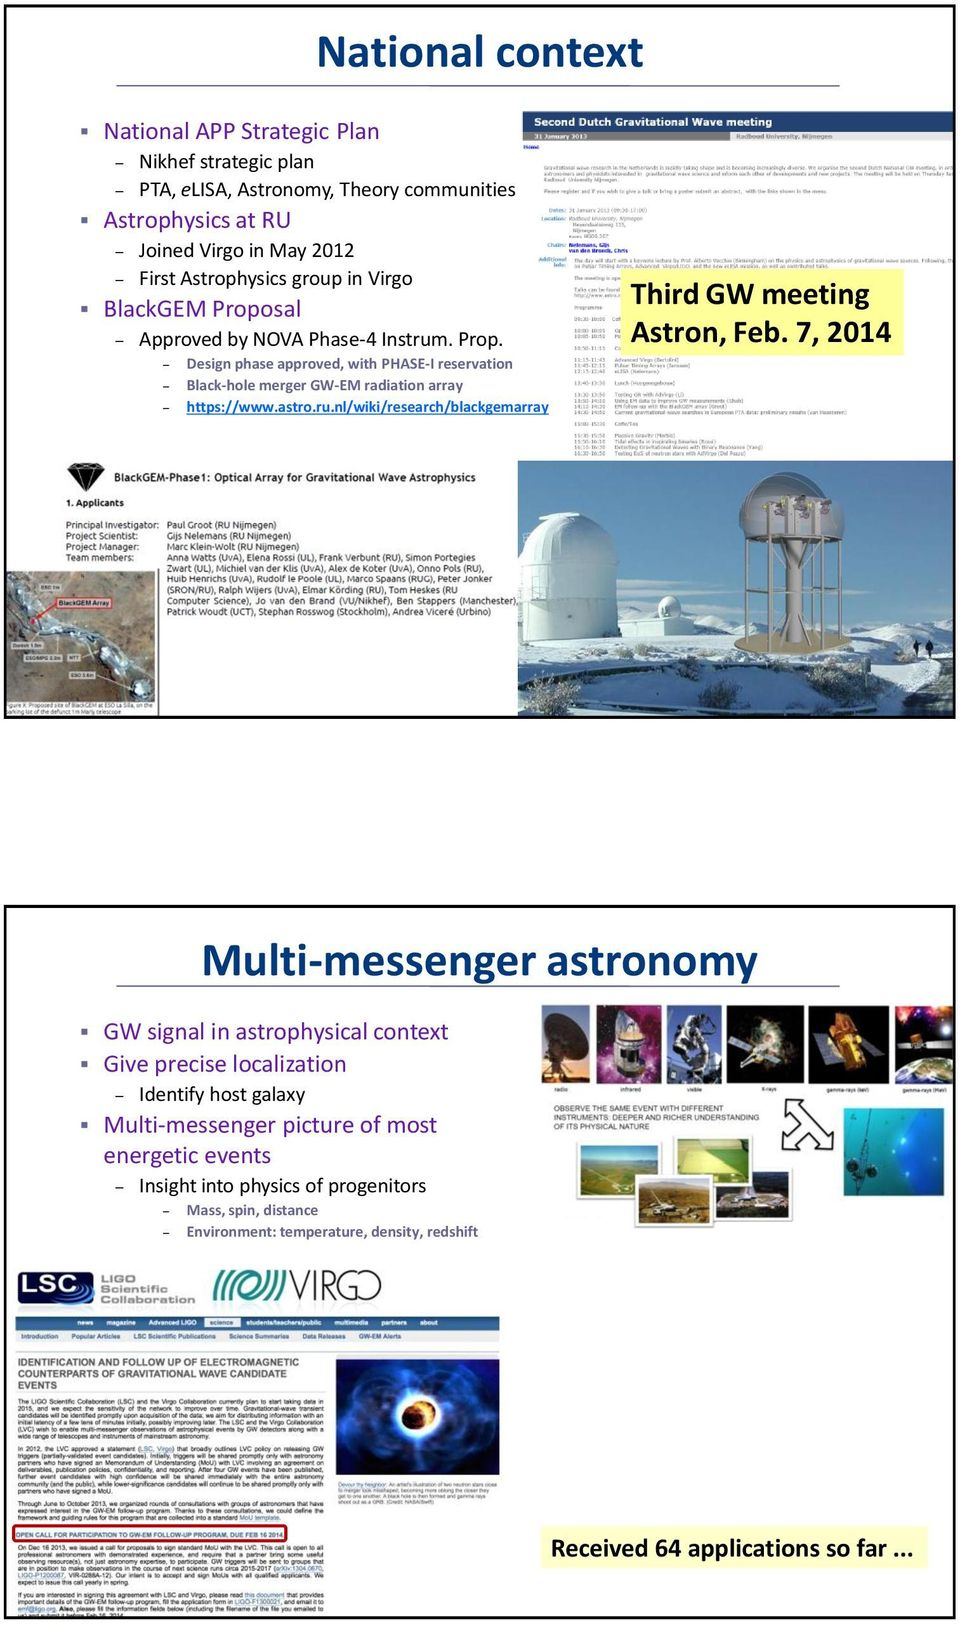 7, 2014 Multi-messenger astronomy GW signal in astrophysical context Give precise localization Identify host galaxy Multi-messenger picture of most energetic events Insight into